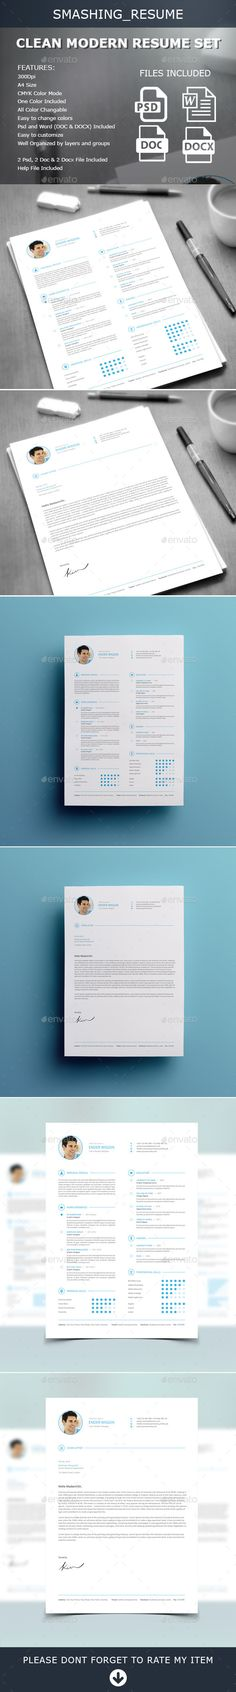 Resume Free cover letter, Resume cv and Professional resume template - modern resumes